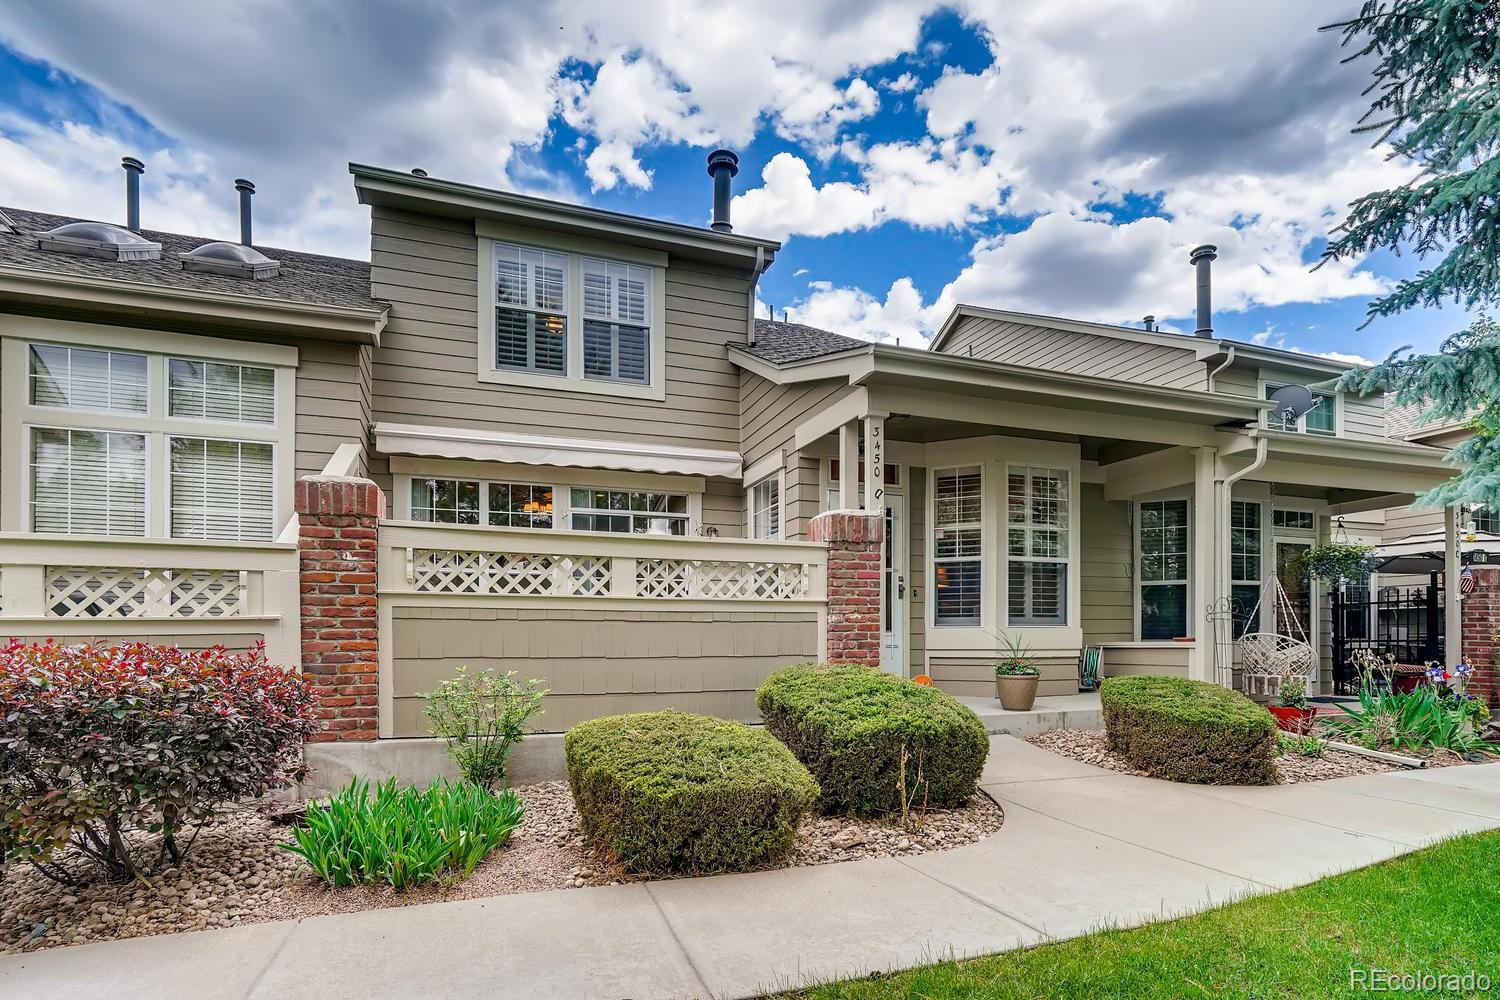 MLS# 7097344 - 2 - 3450 W 98th Drive #D, Westminster, CO 80031